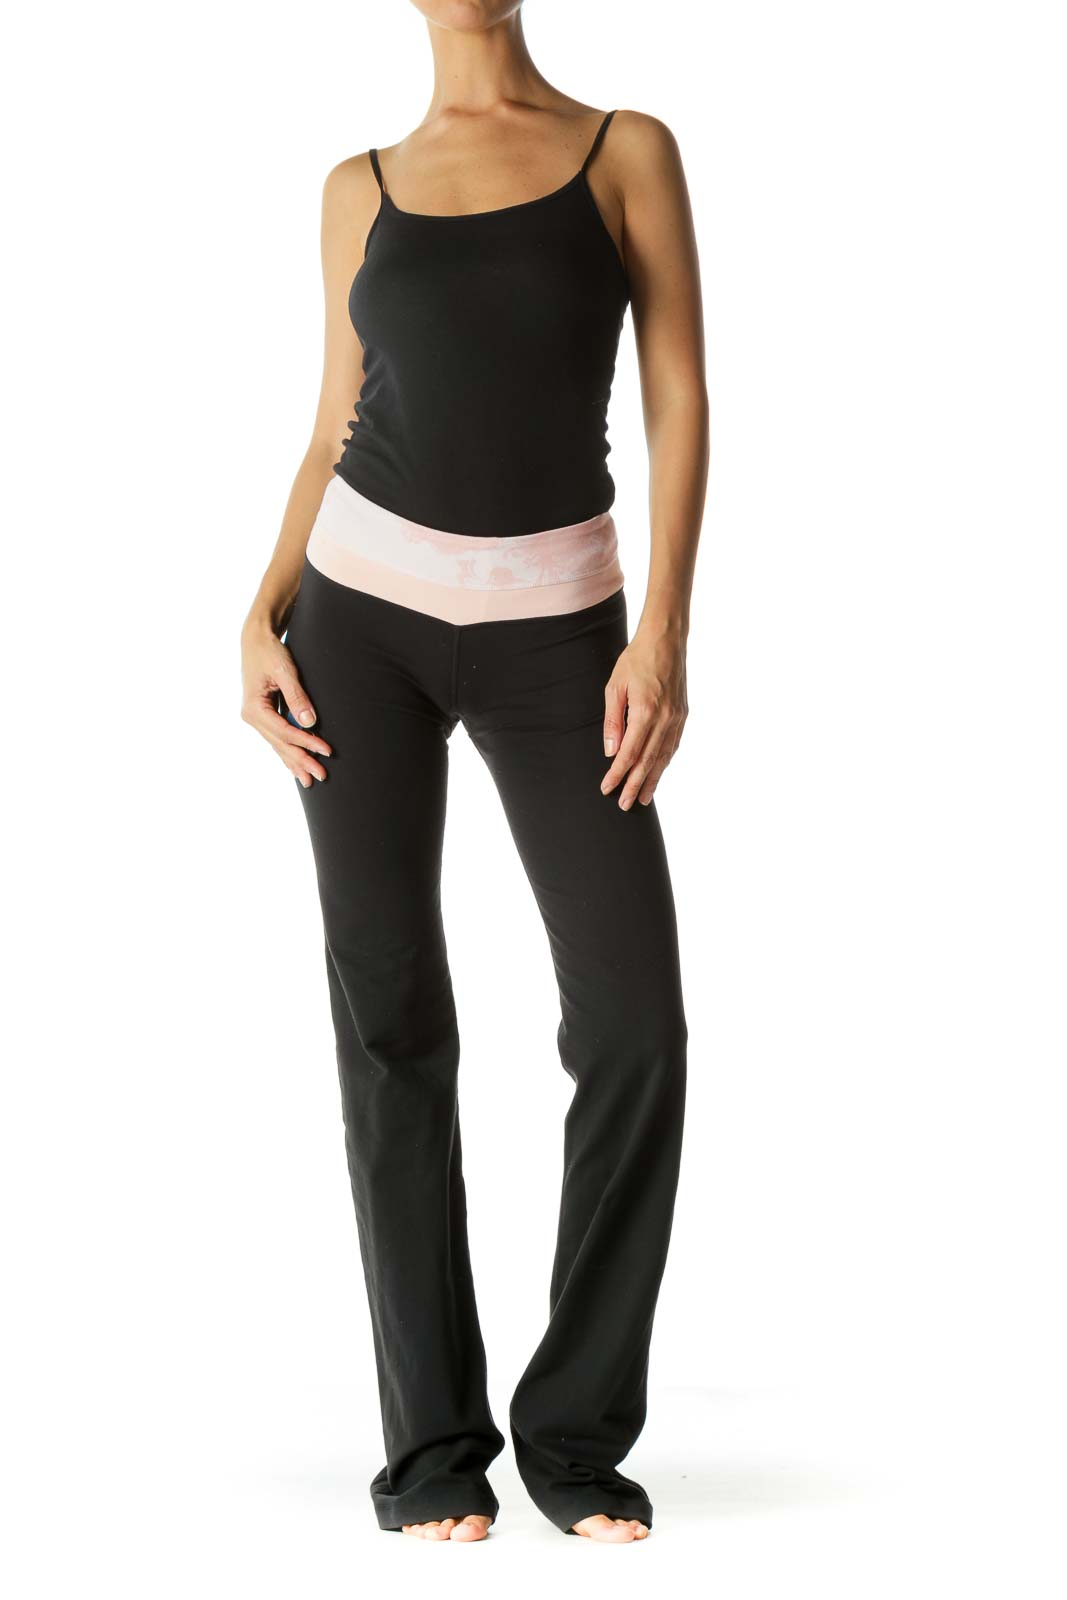 Black and Pink Bootcut Yoga Pant